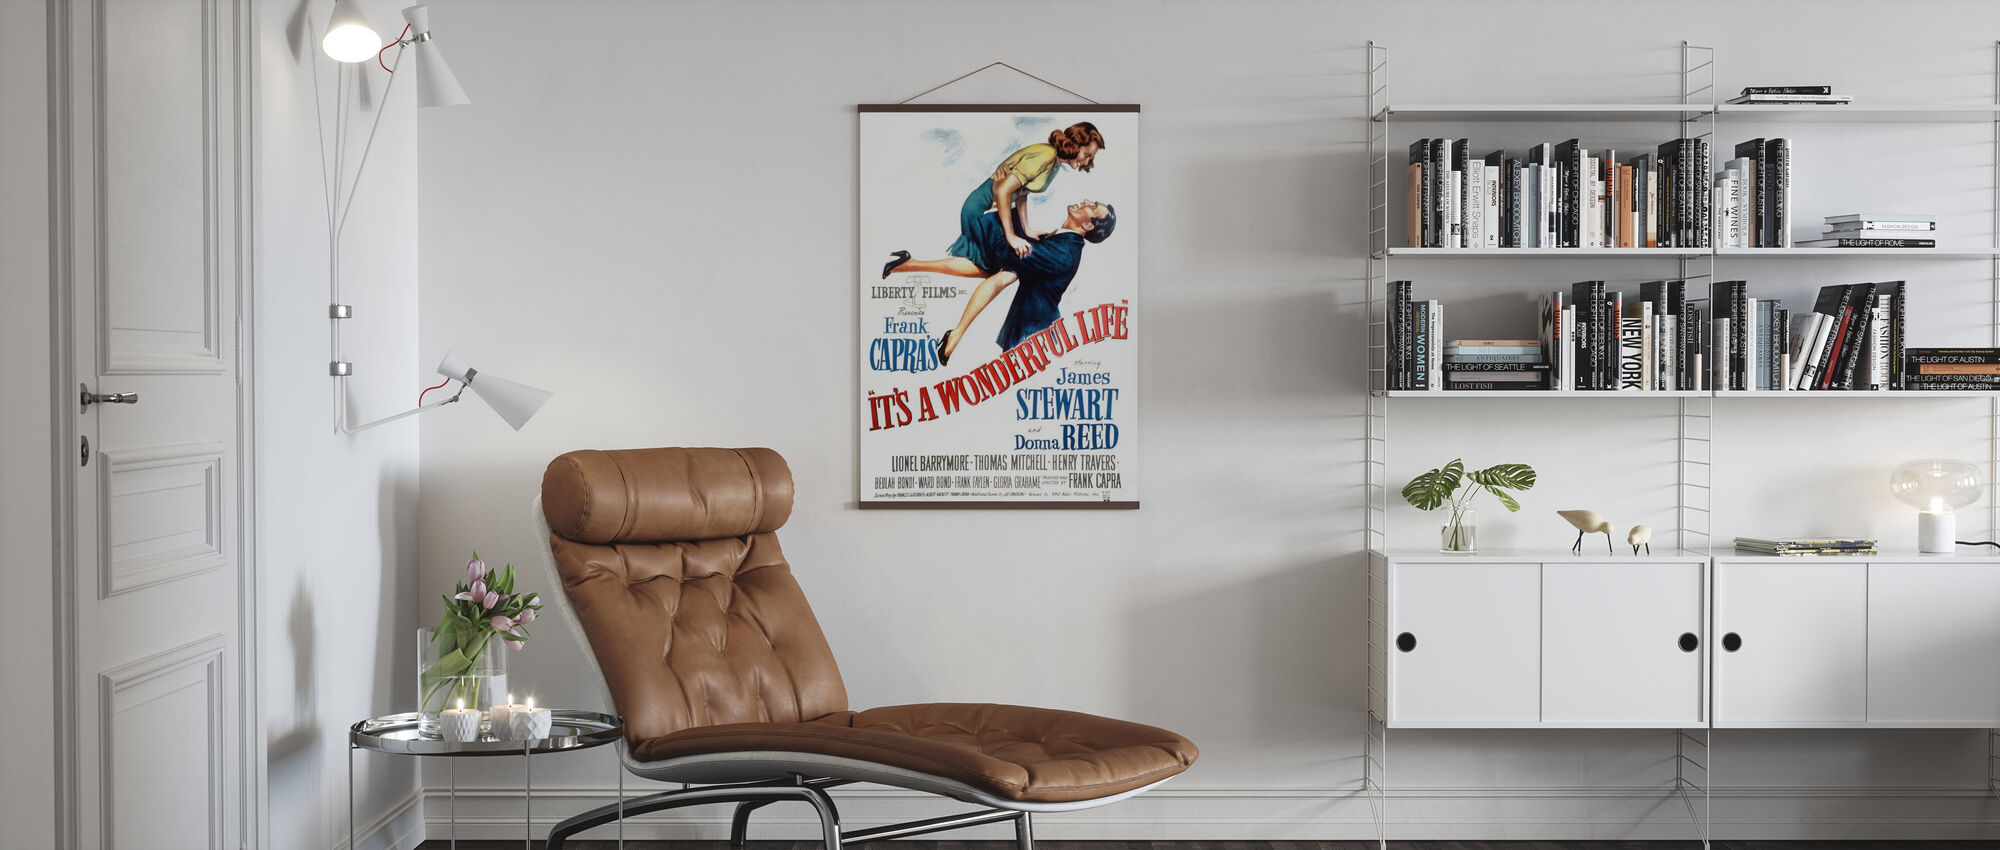 It's a Wonderful Life - Poster - Living Room